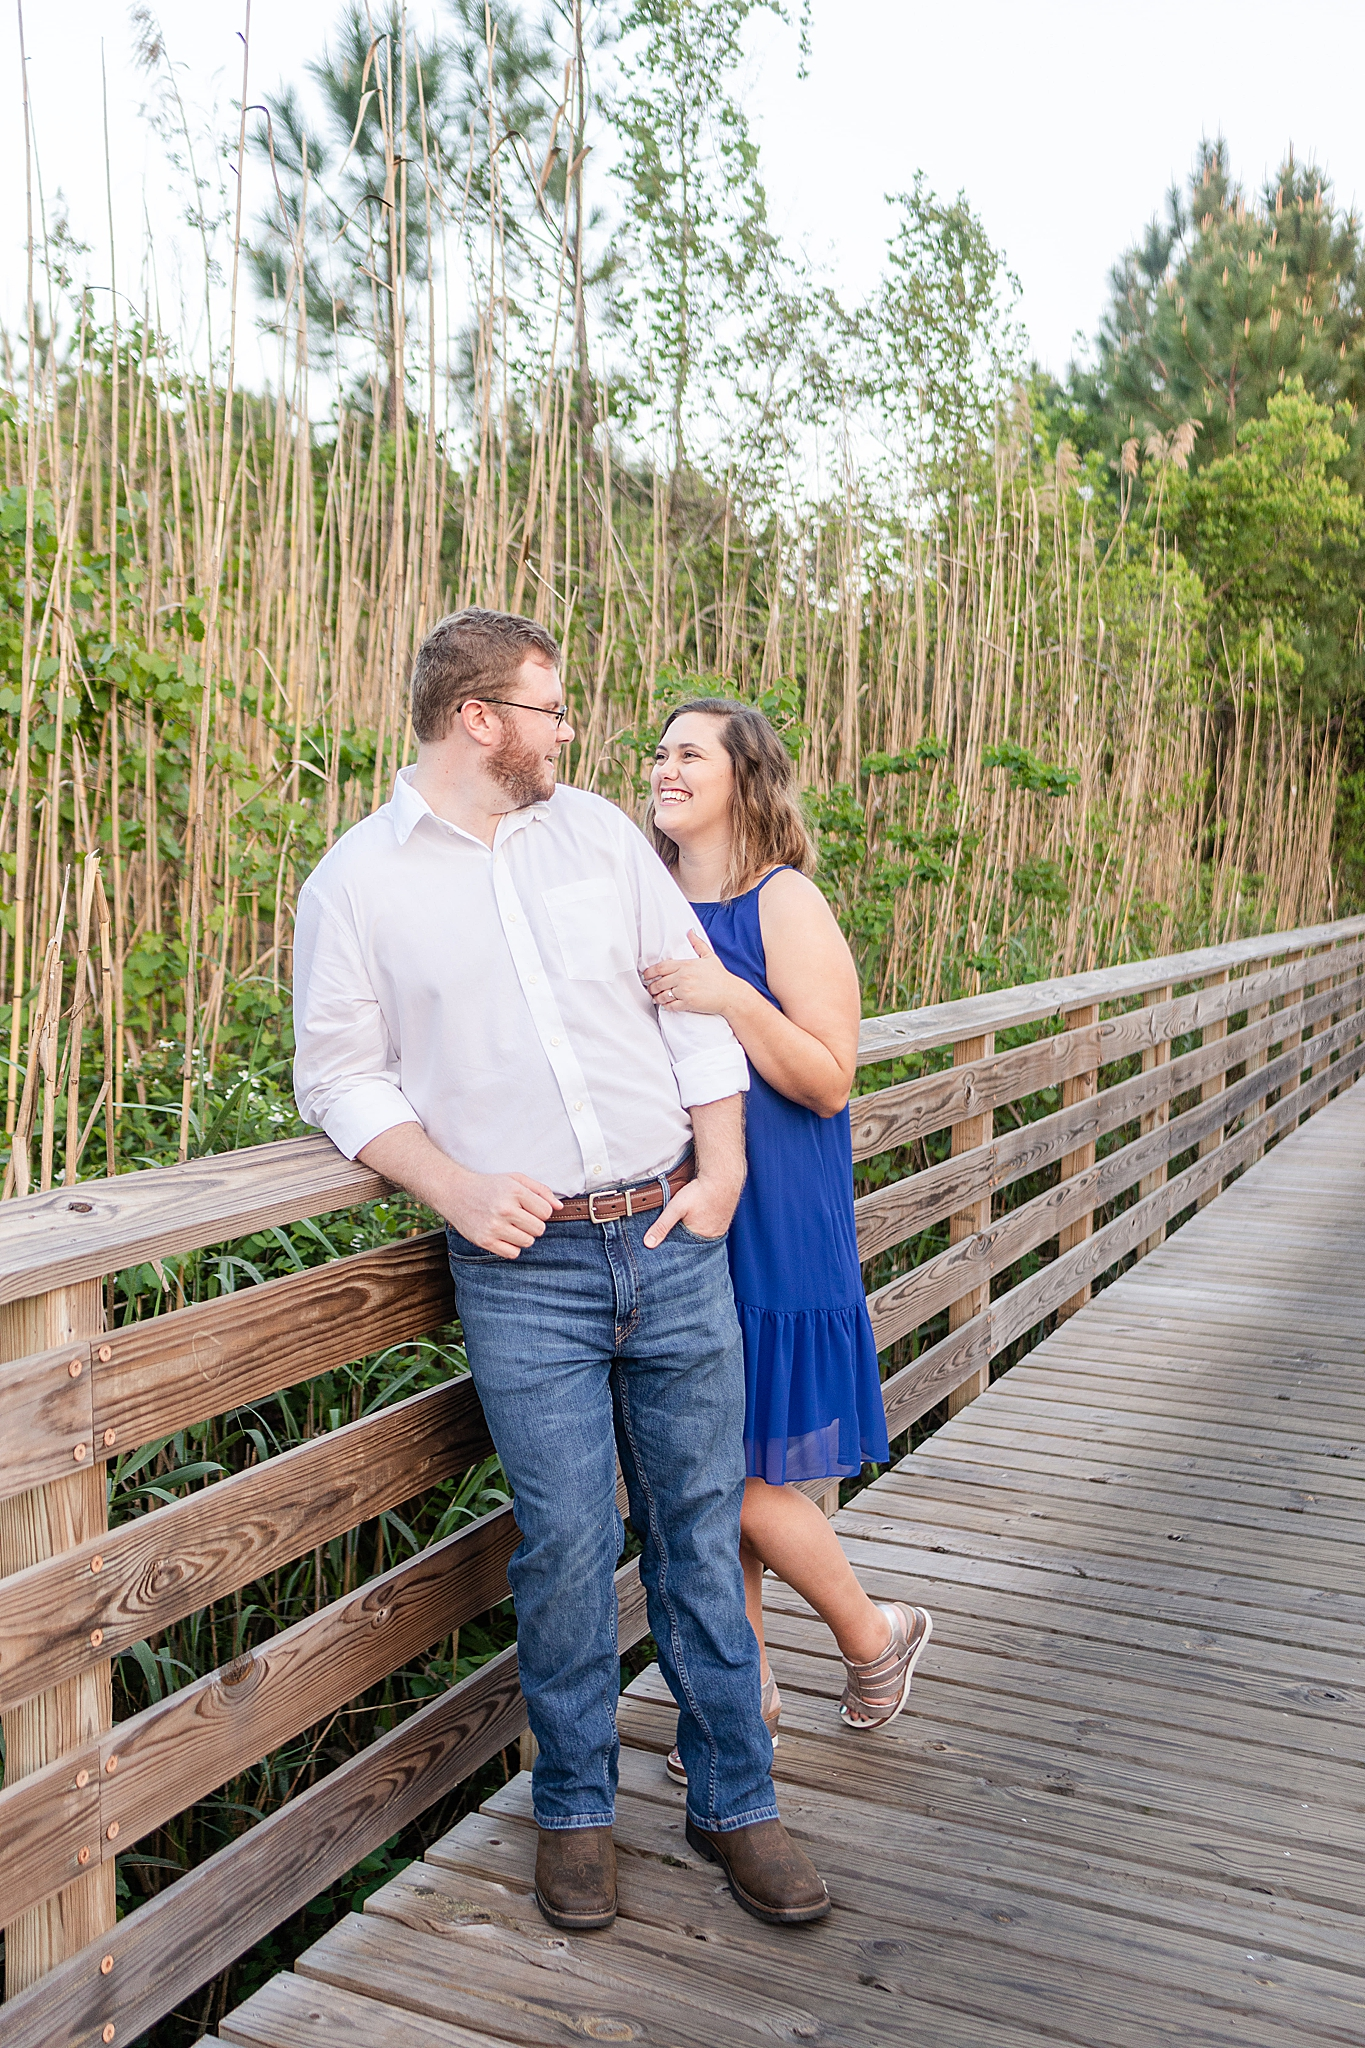 Gulf State Park engagement session on wooden pathway